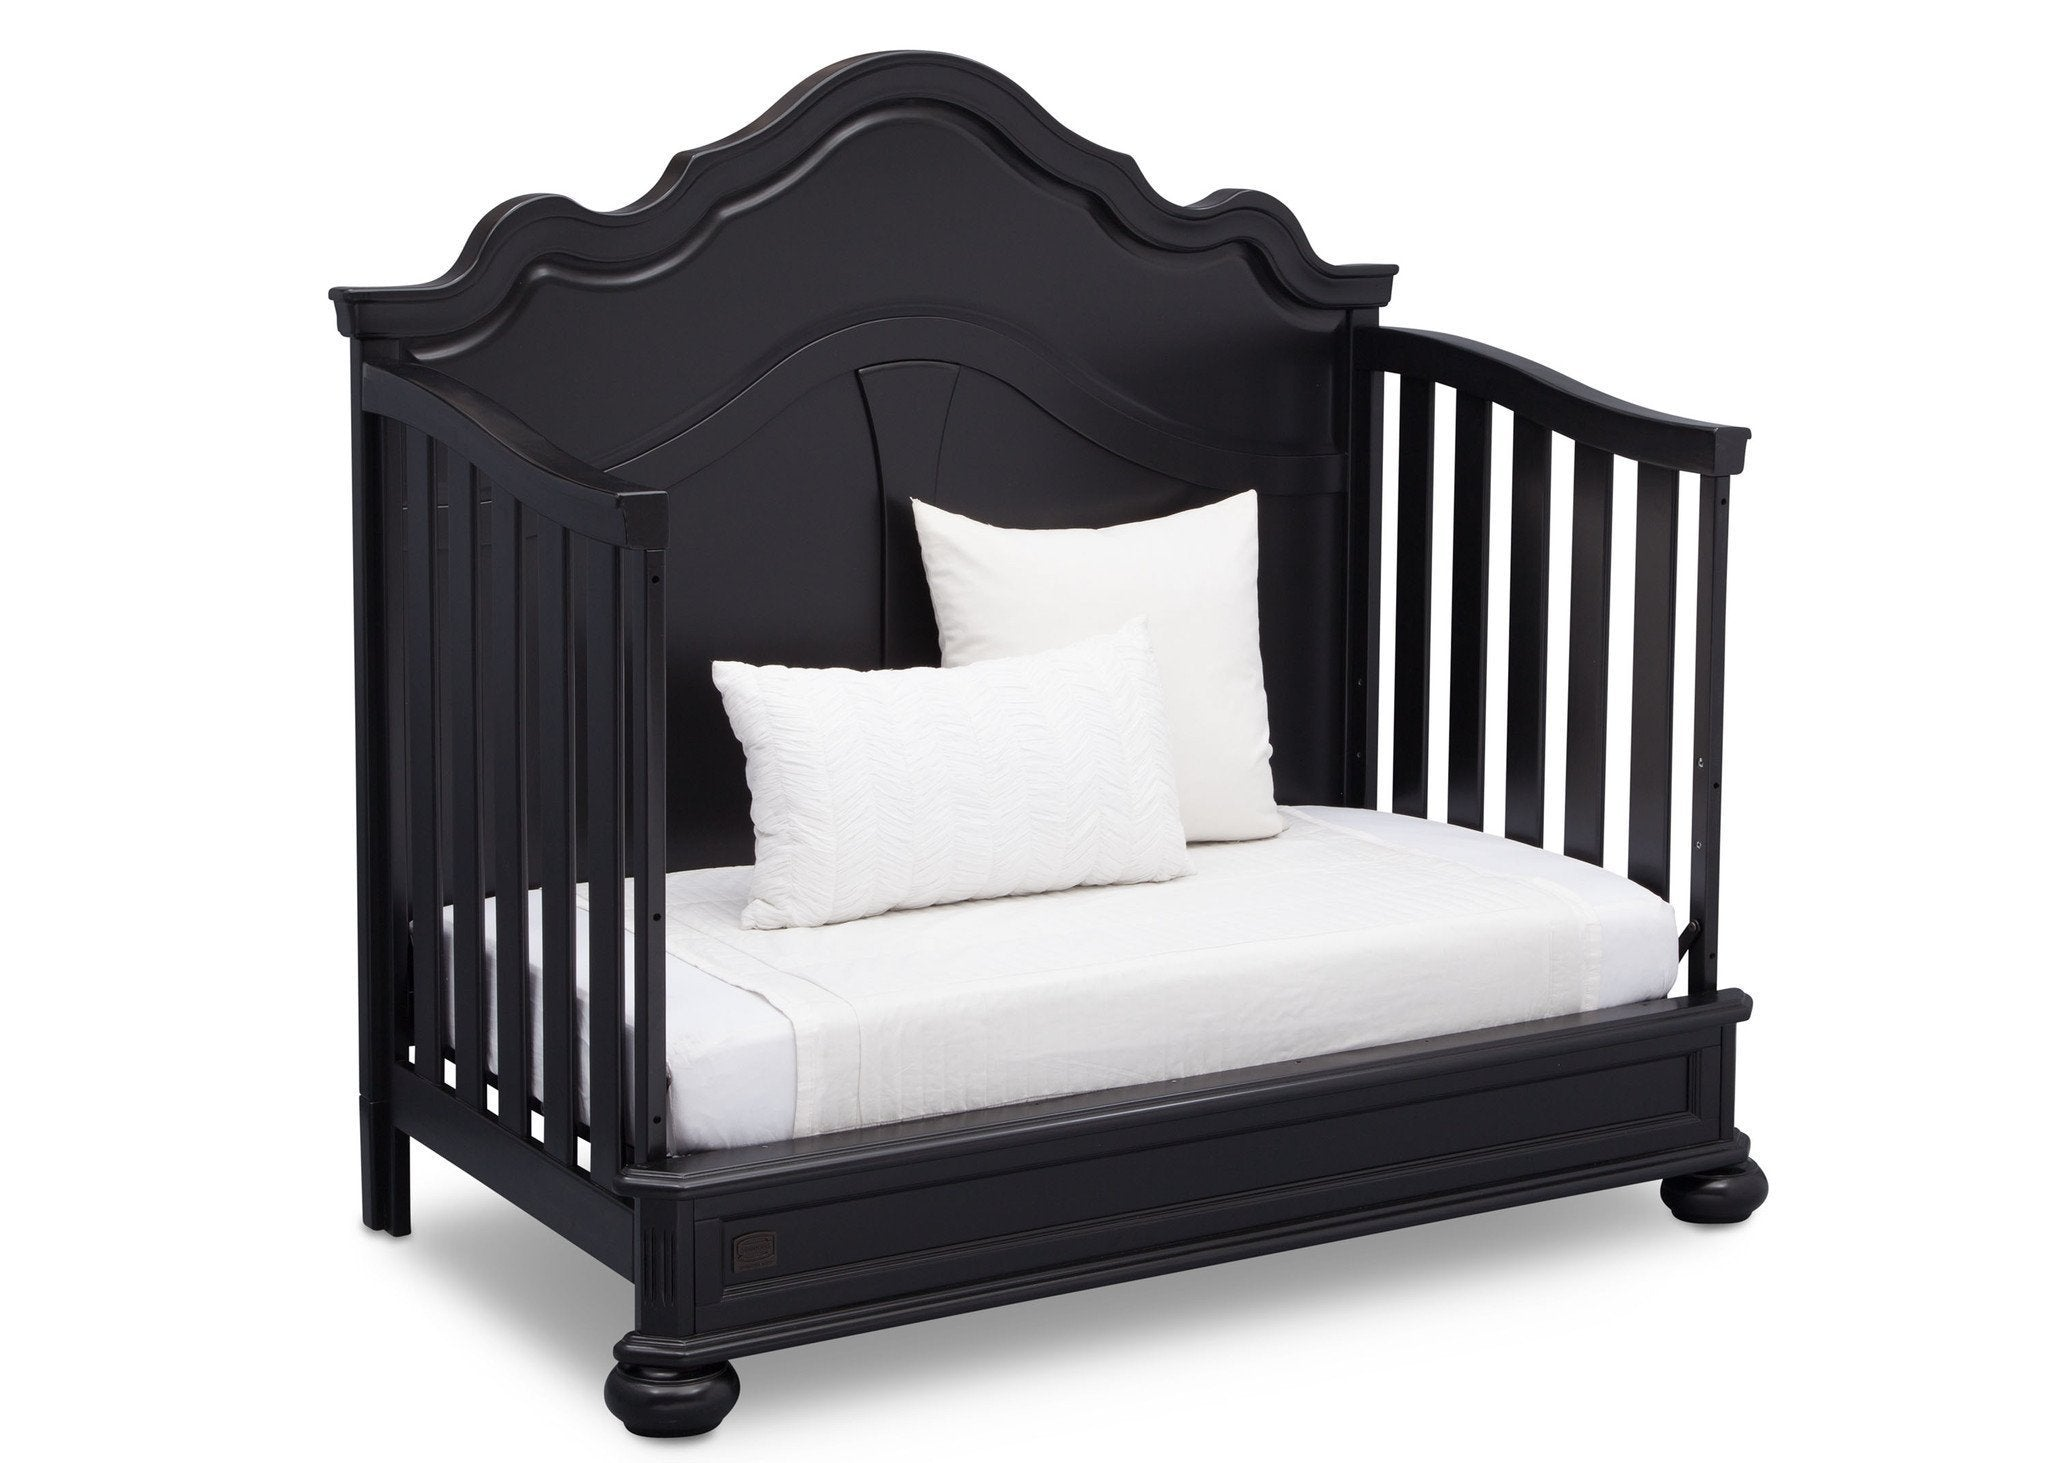 Simmons Kids Ebony (0011) Peyton Crib n' more Daybed conversion side view b5b